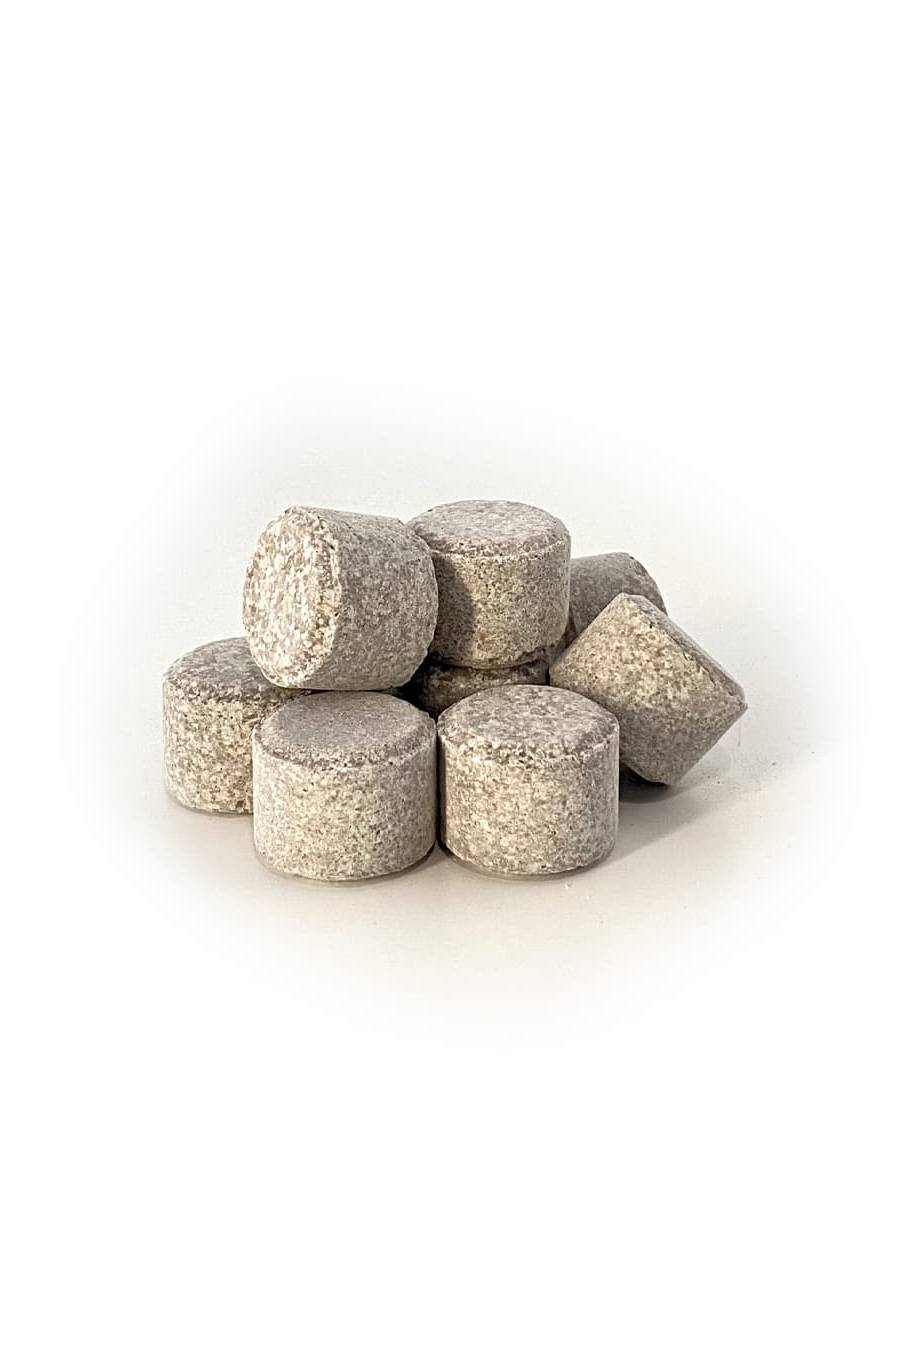 NPK Fertilizer Tabs